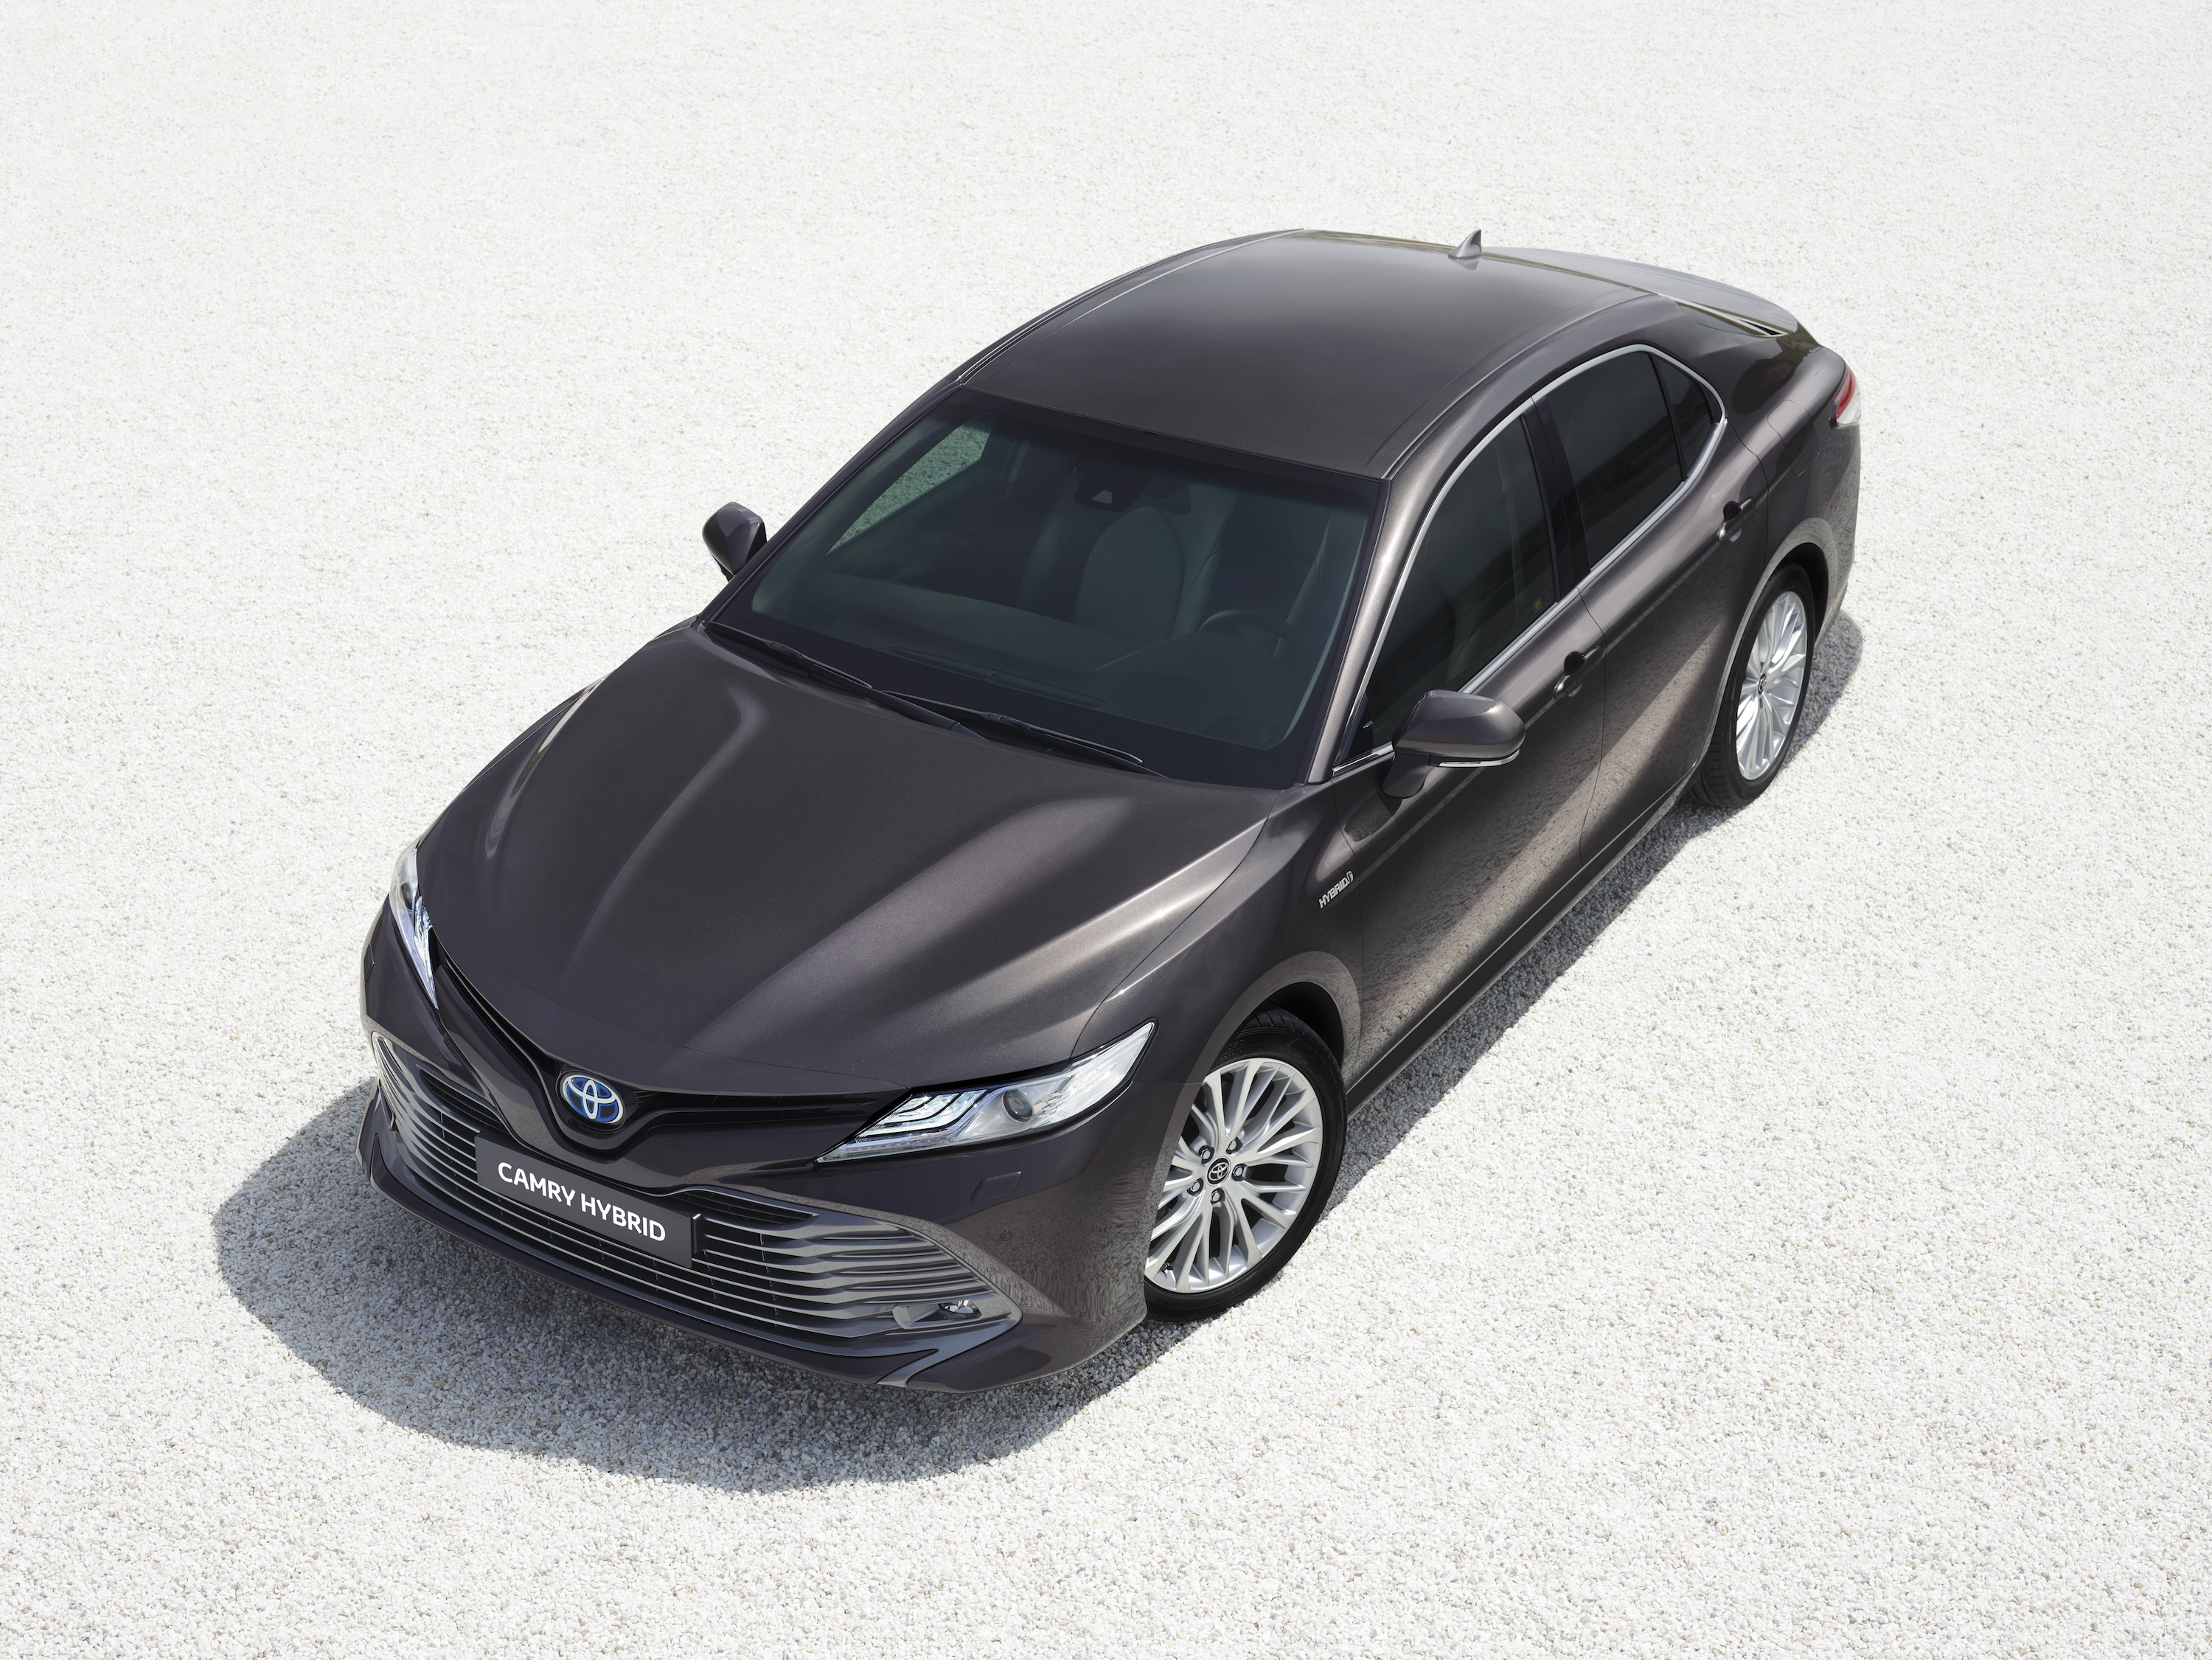 brand new toyota camry hybrid kredit grand avanza 2018 2019 announces it s ready for europe at paris motor show